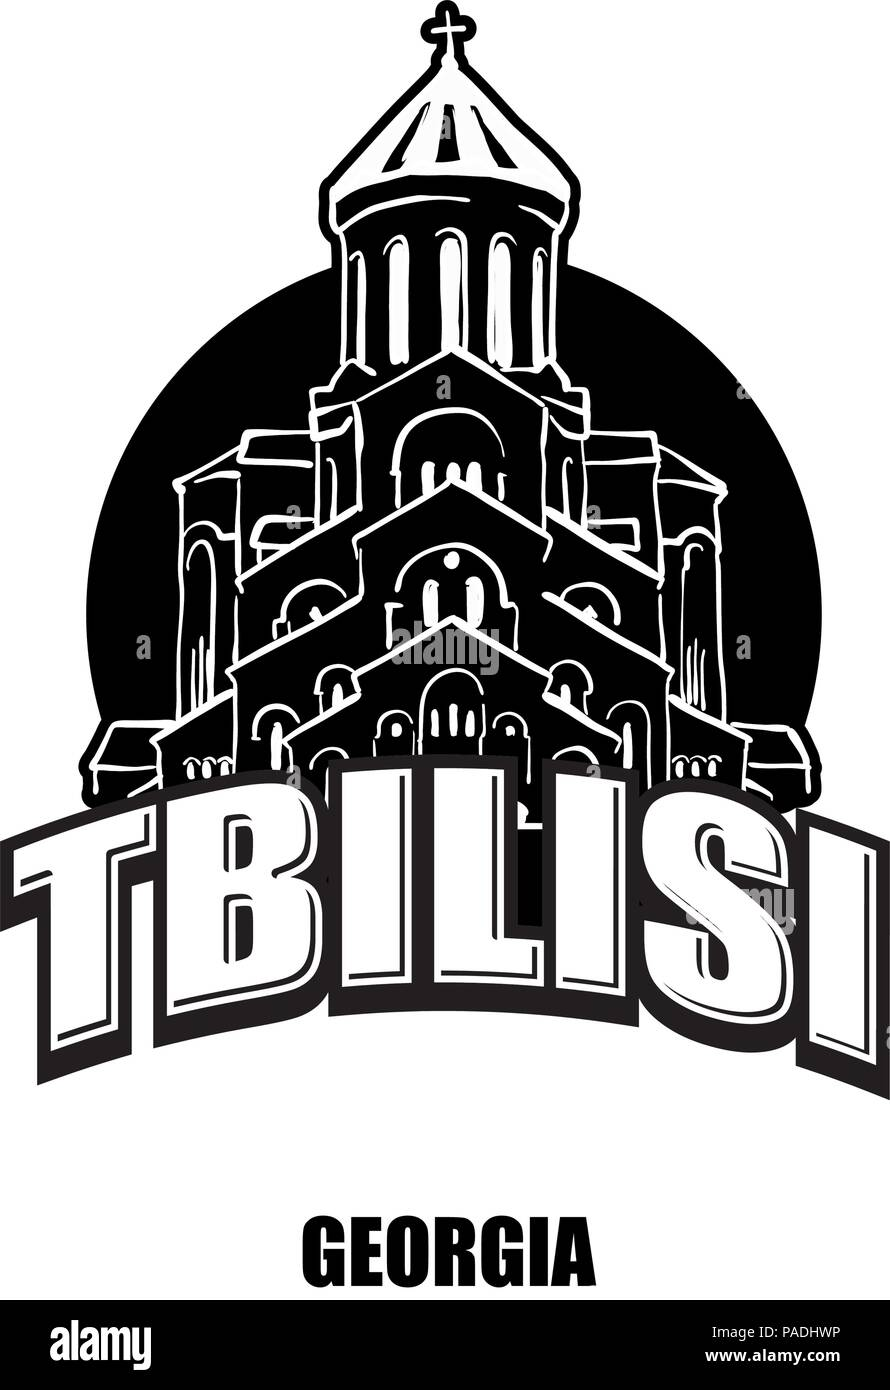 Tbilisi, Geogia, black and white logo for high quality prints. Hand drawn vector sketch. - Stock Vector